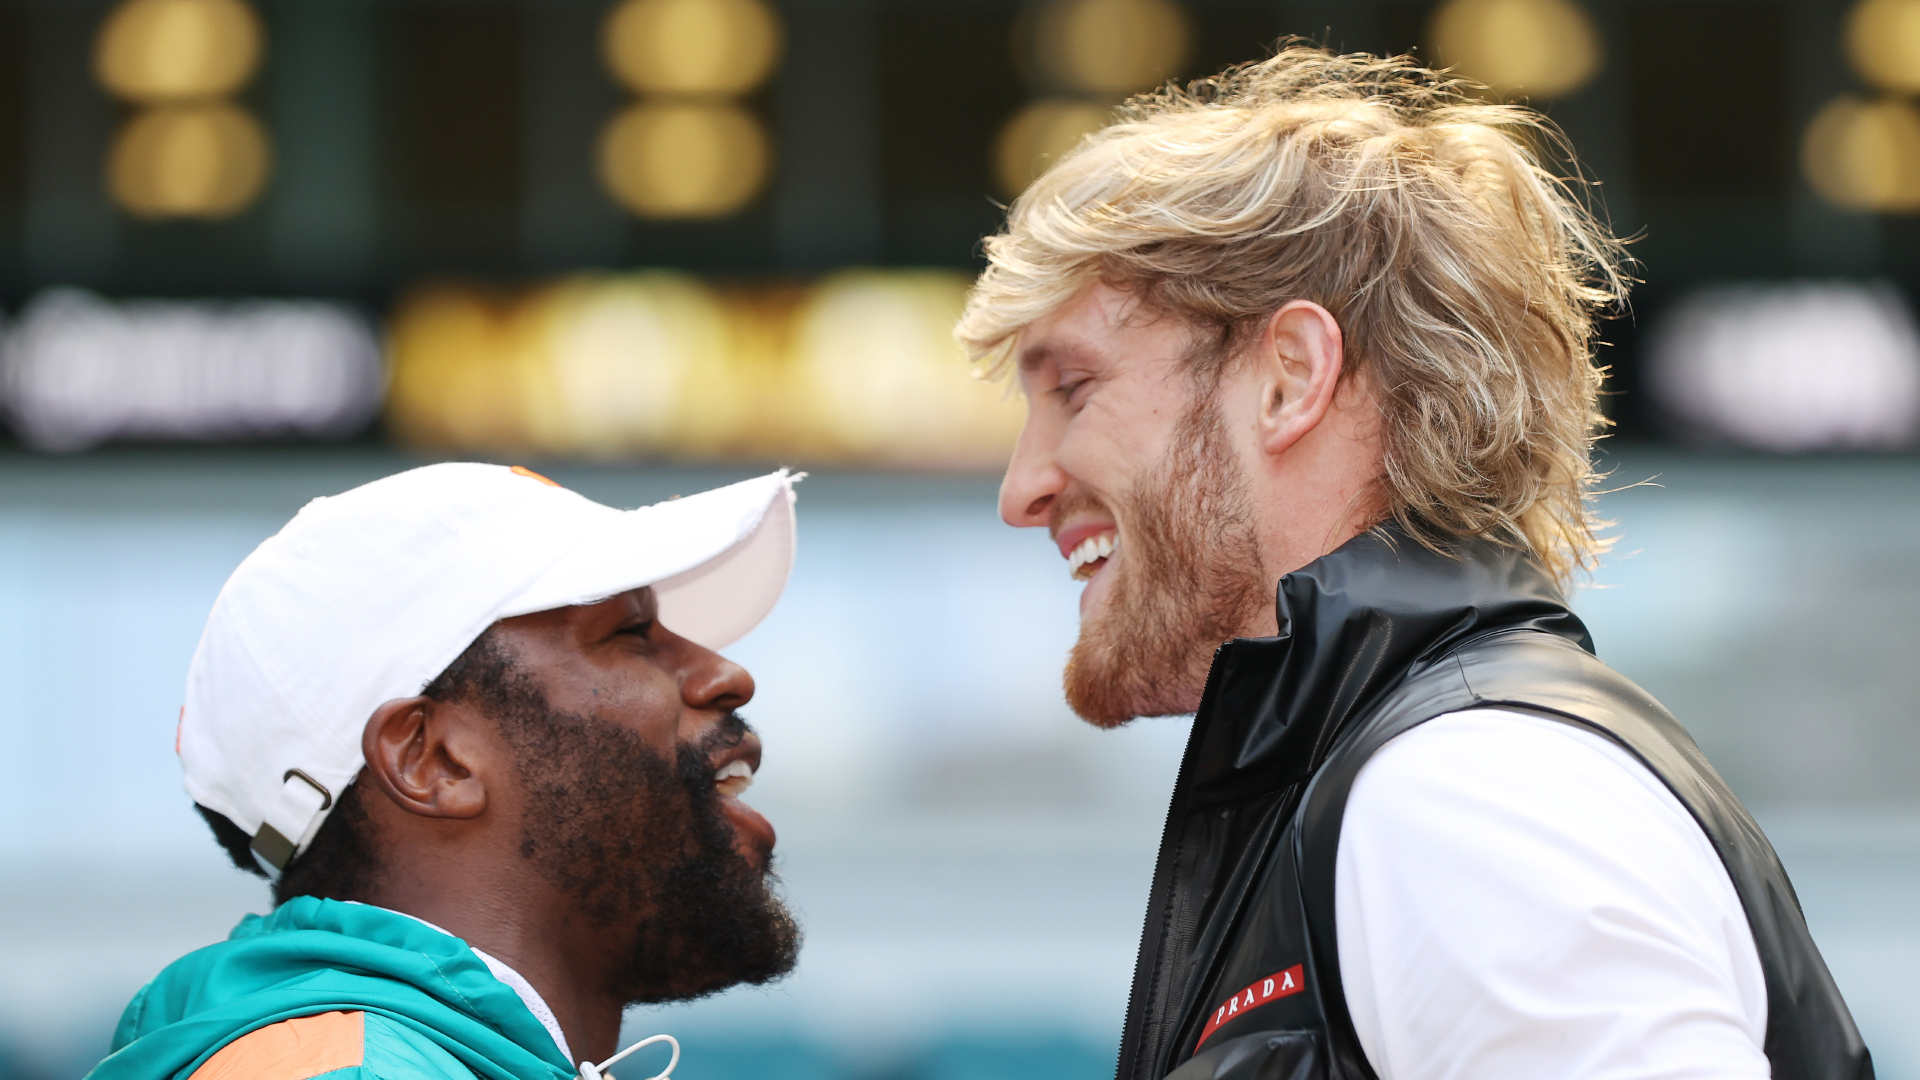 Floyd Mayweather vs. Logan Paul purse: How much money will they make for boxing exhibition?